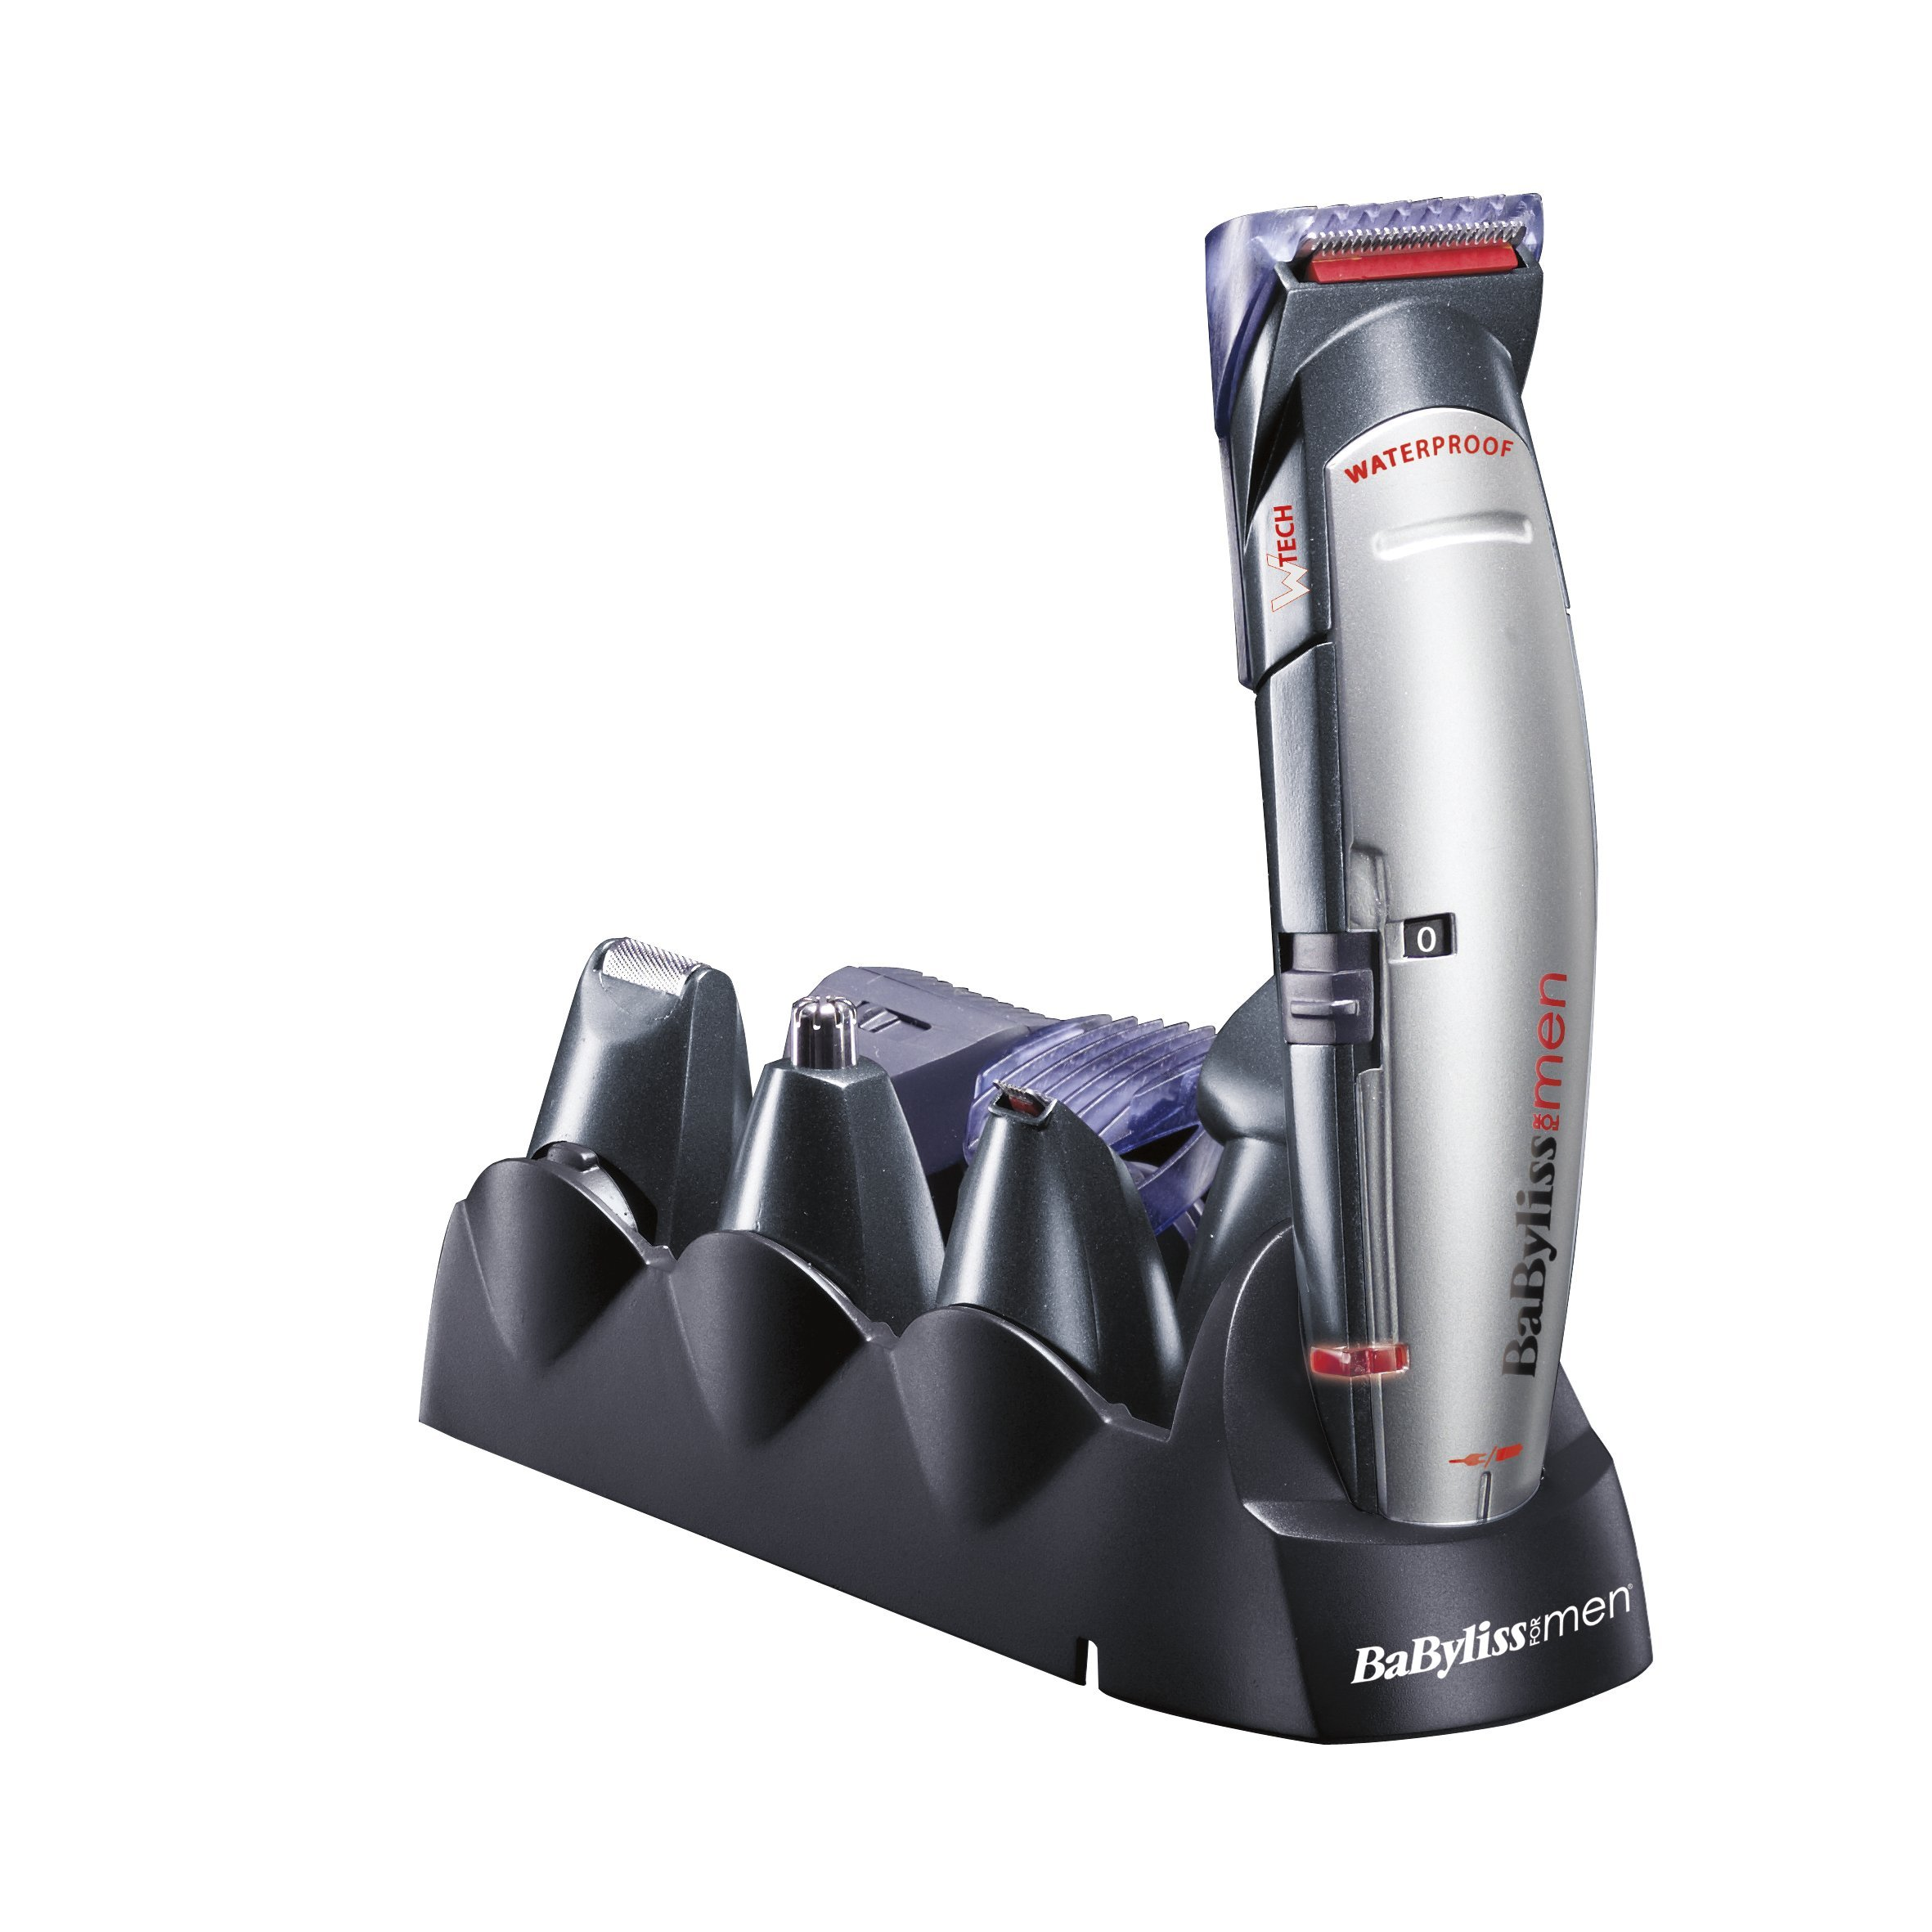 Babyliss E837E Tondeuse Kit 10 en 1 Multi-Usage product image